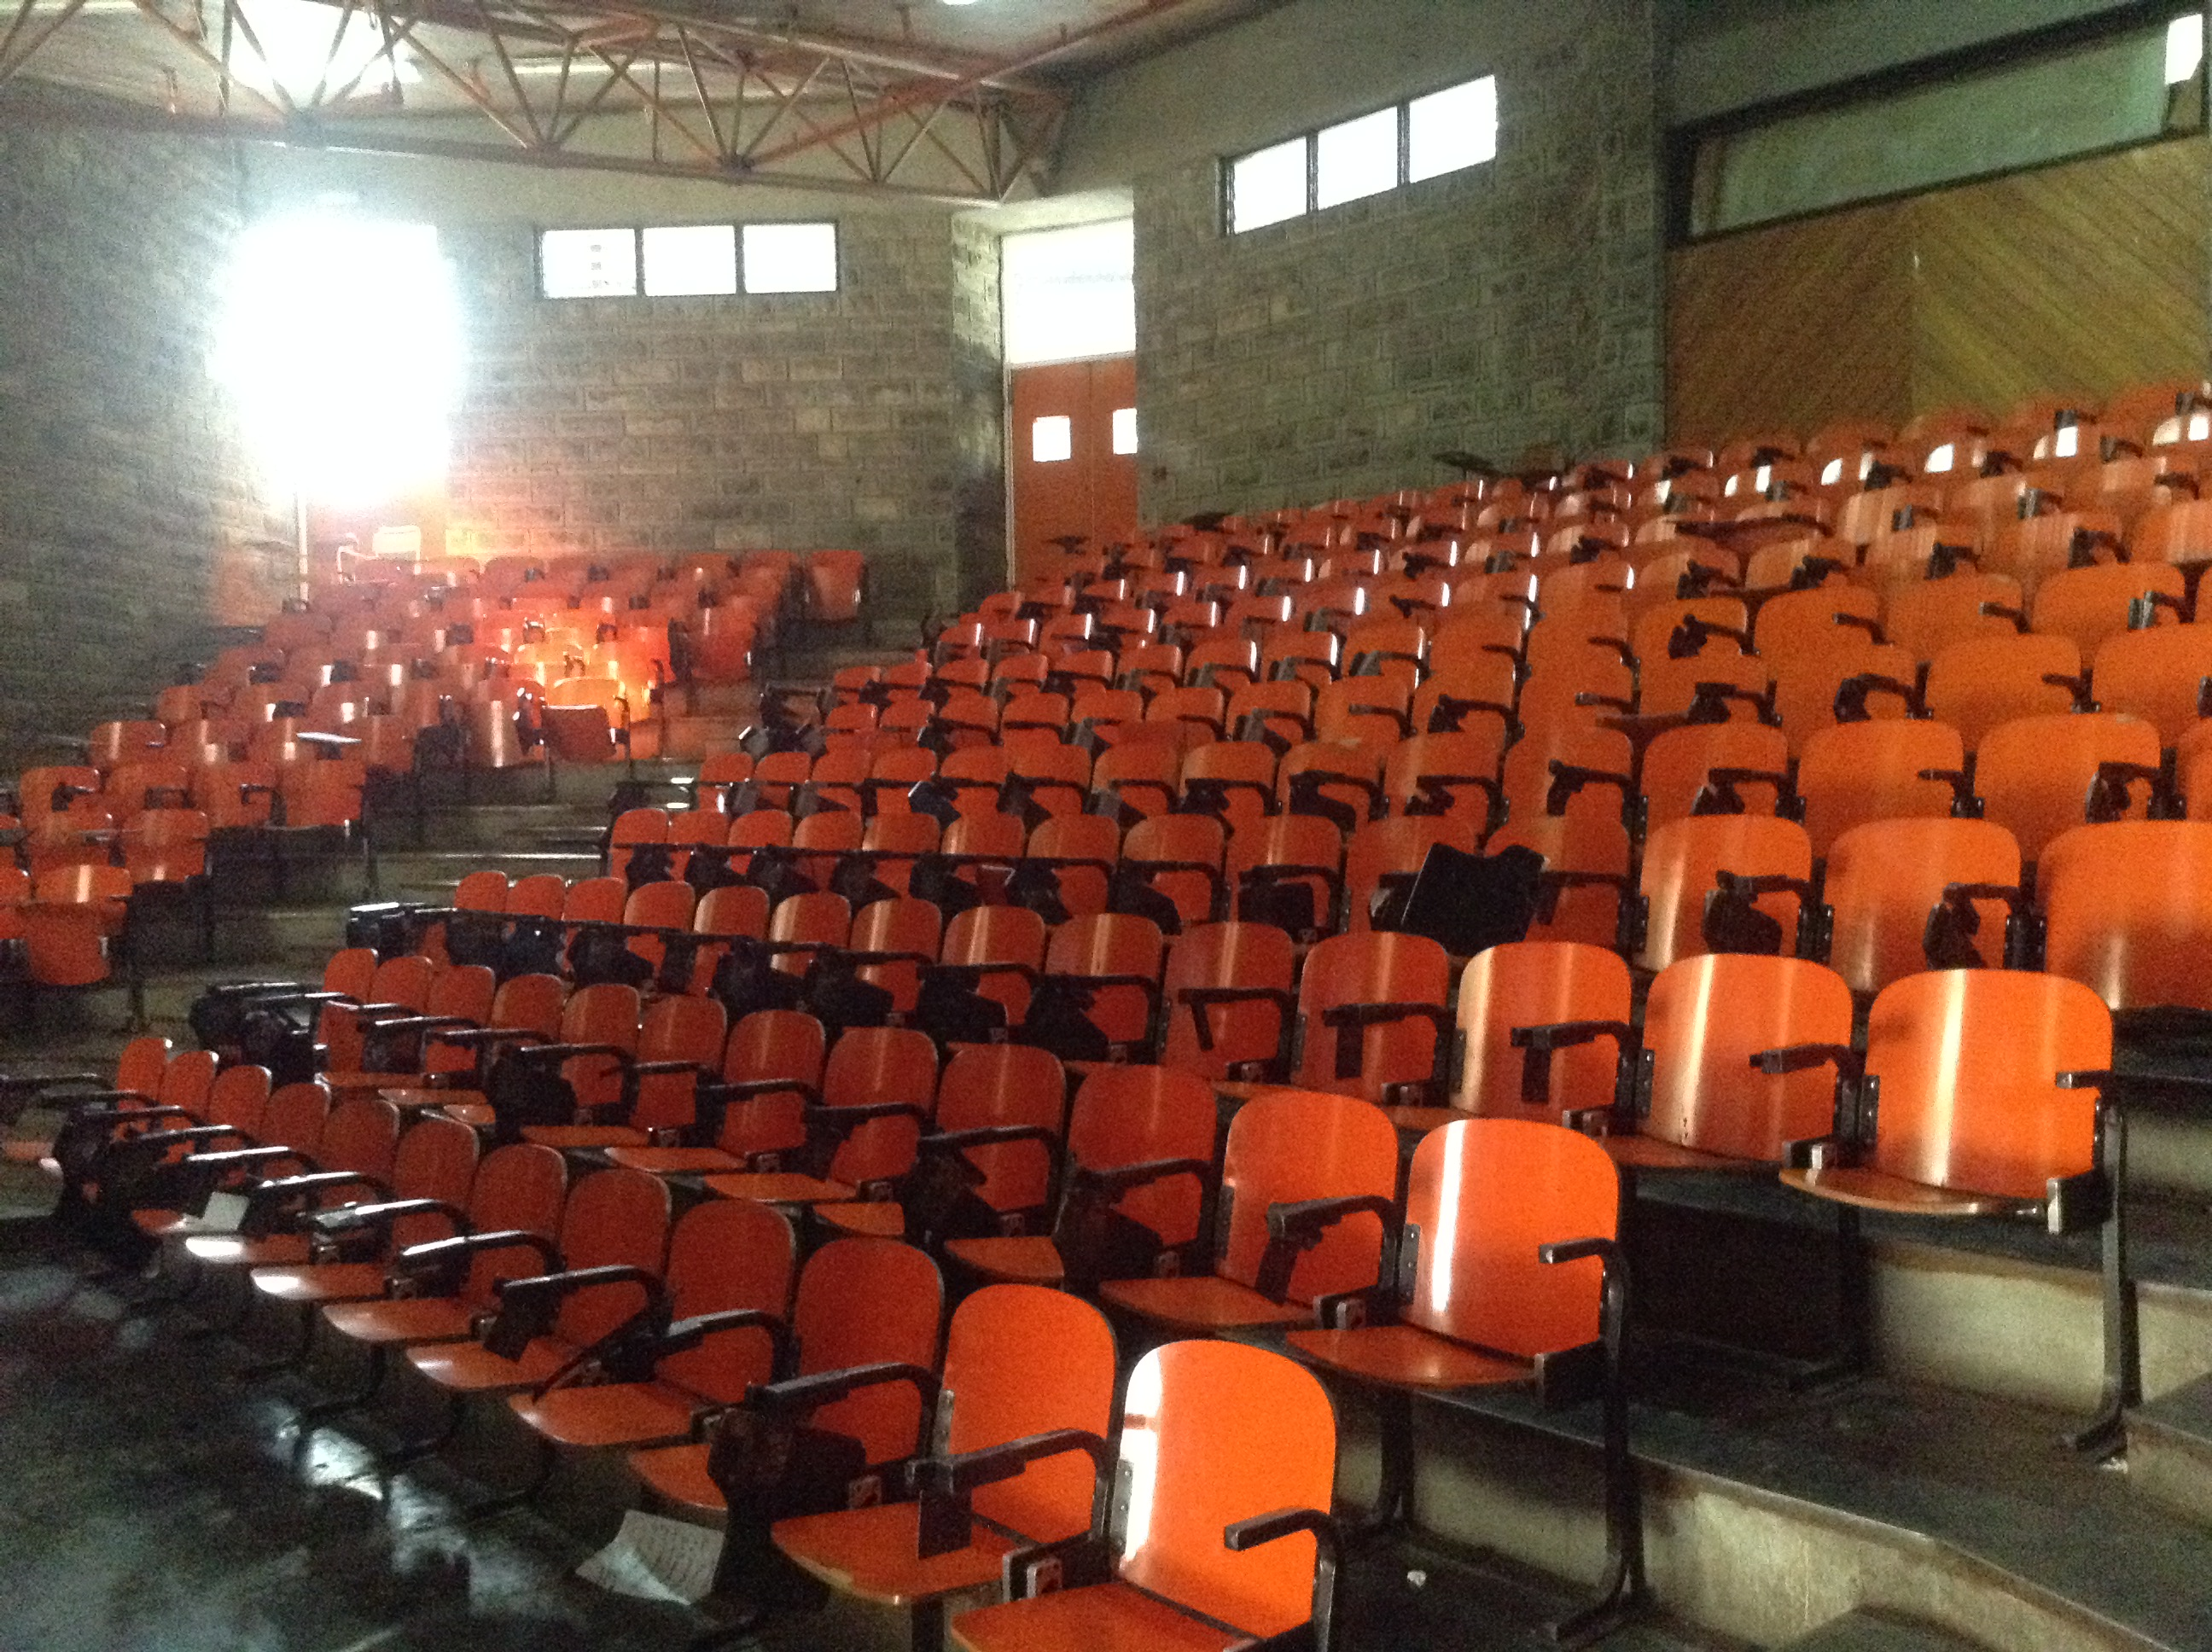 Classroom seating in Addis Ababa lecture hall